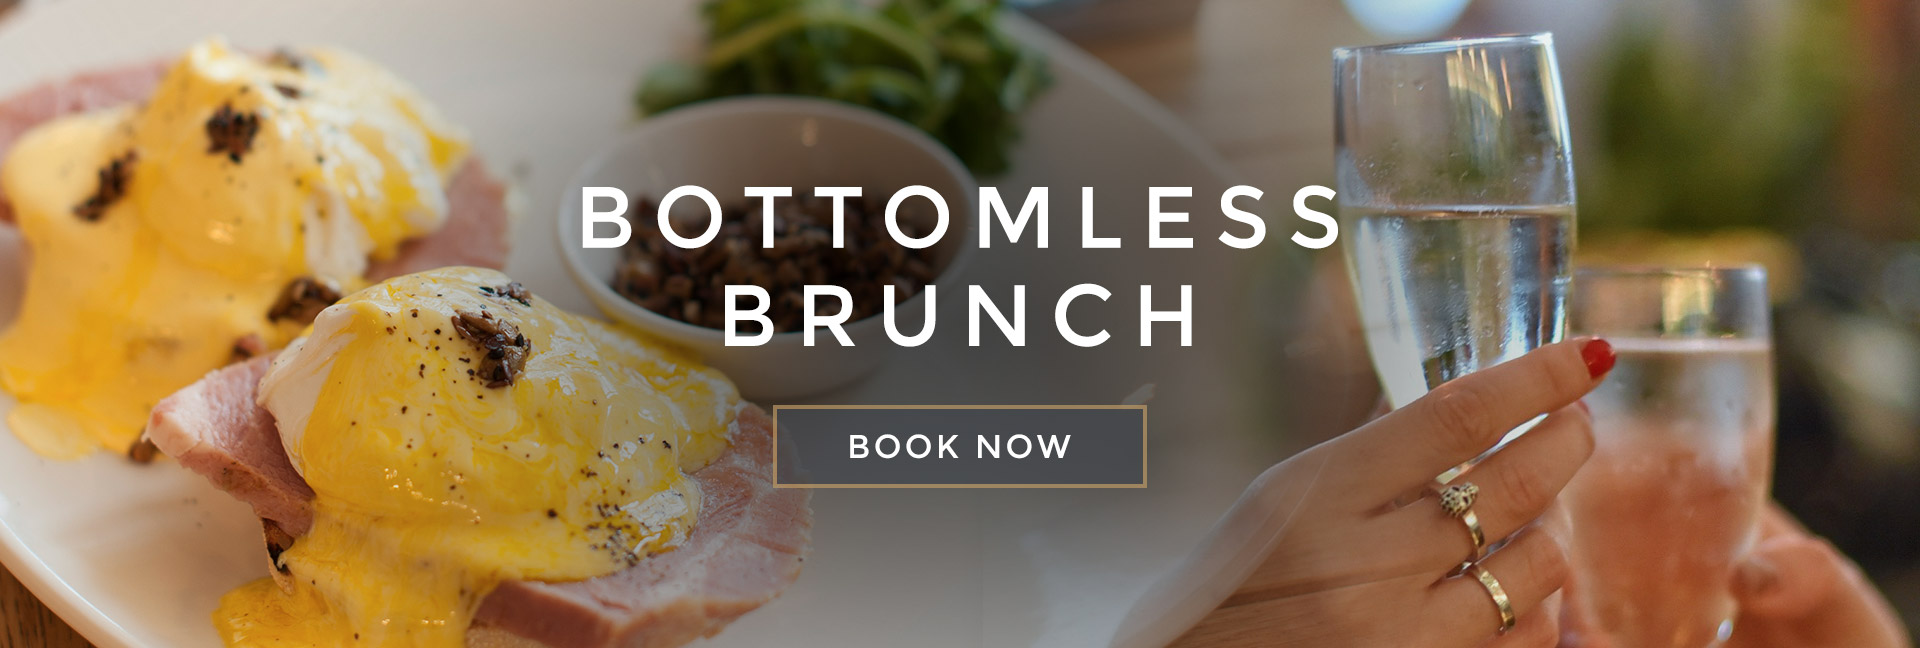 Bottomless Brunch at All Bar One Brindleyplace - Book now